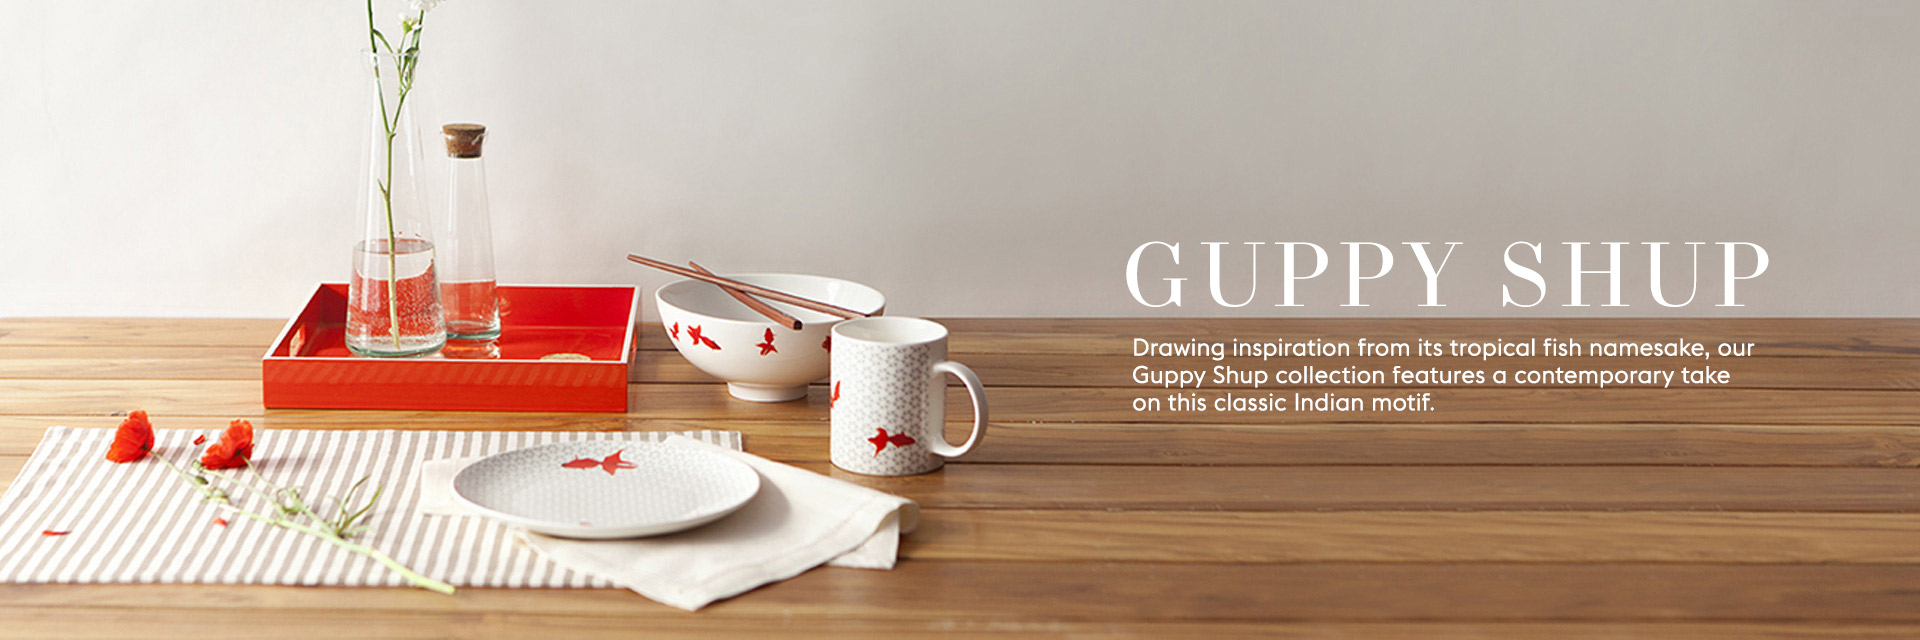 Guppy Shup Collection